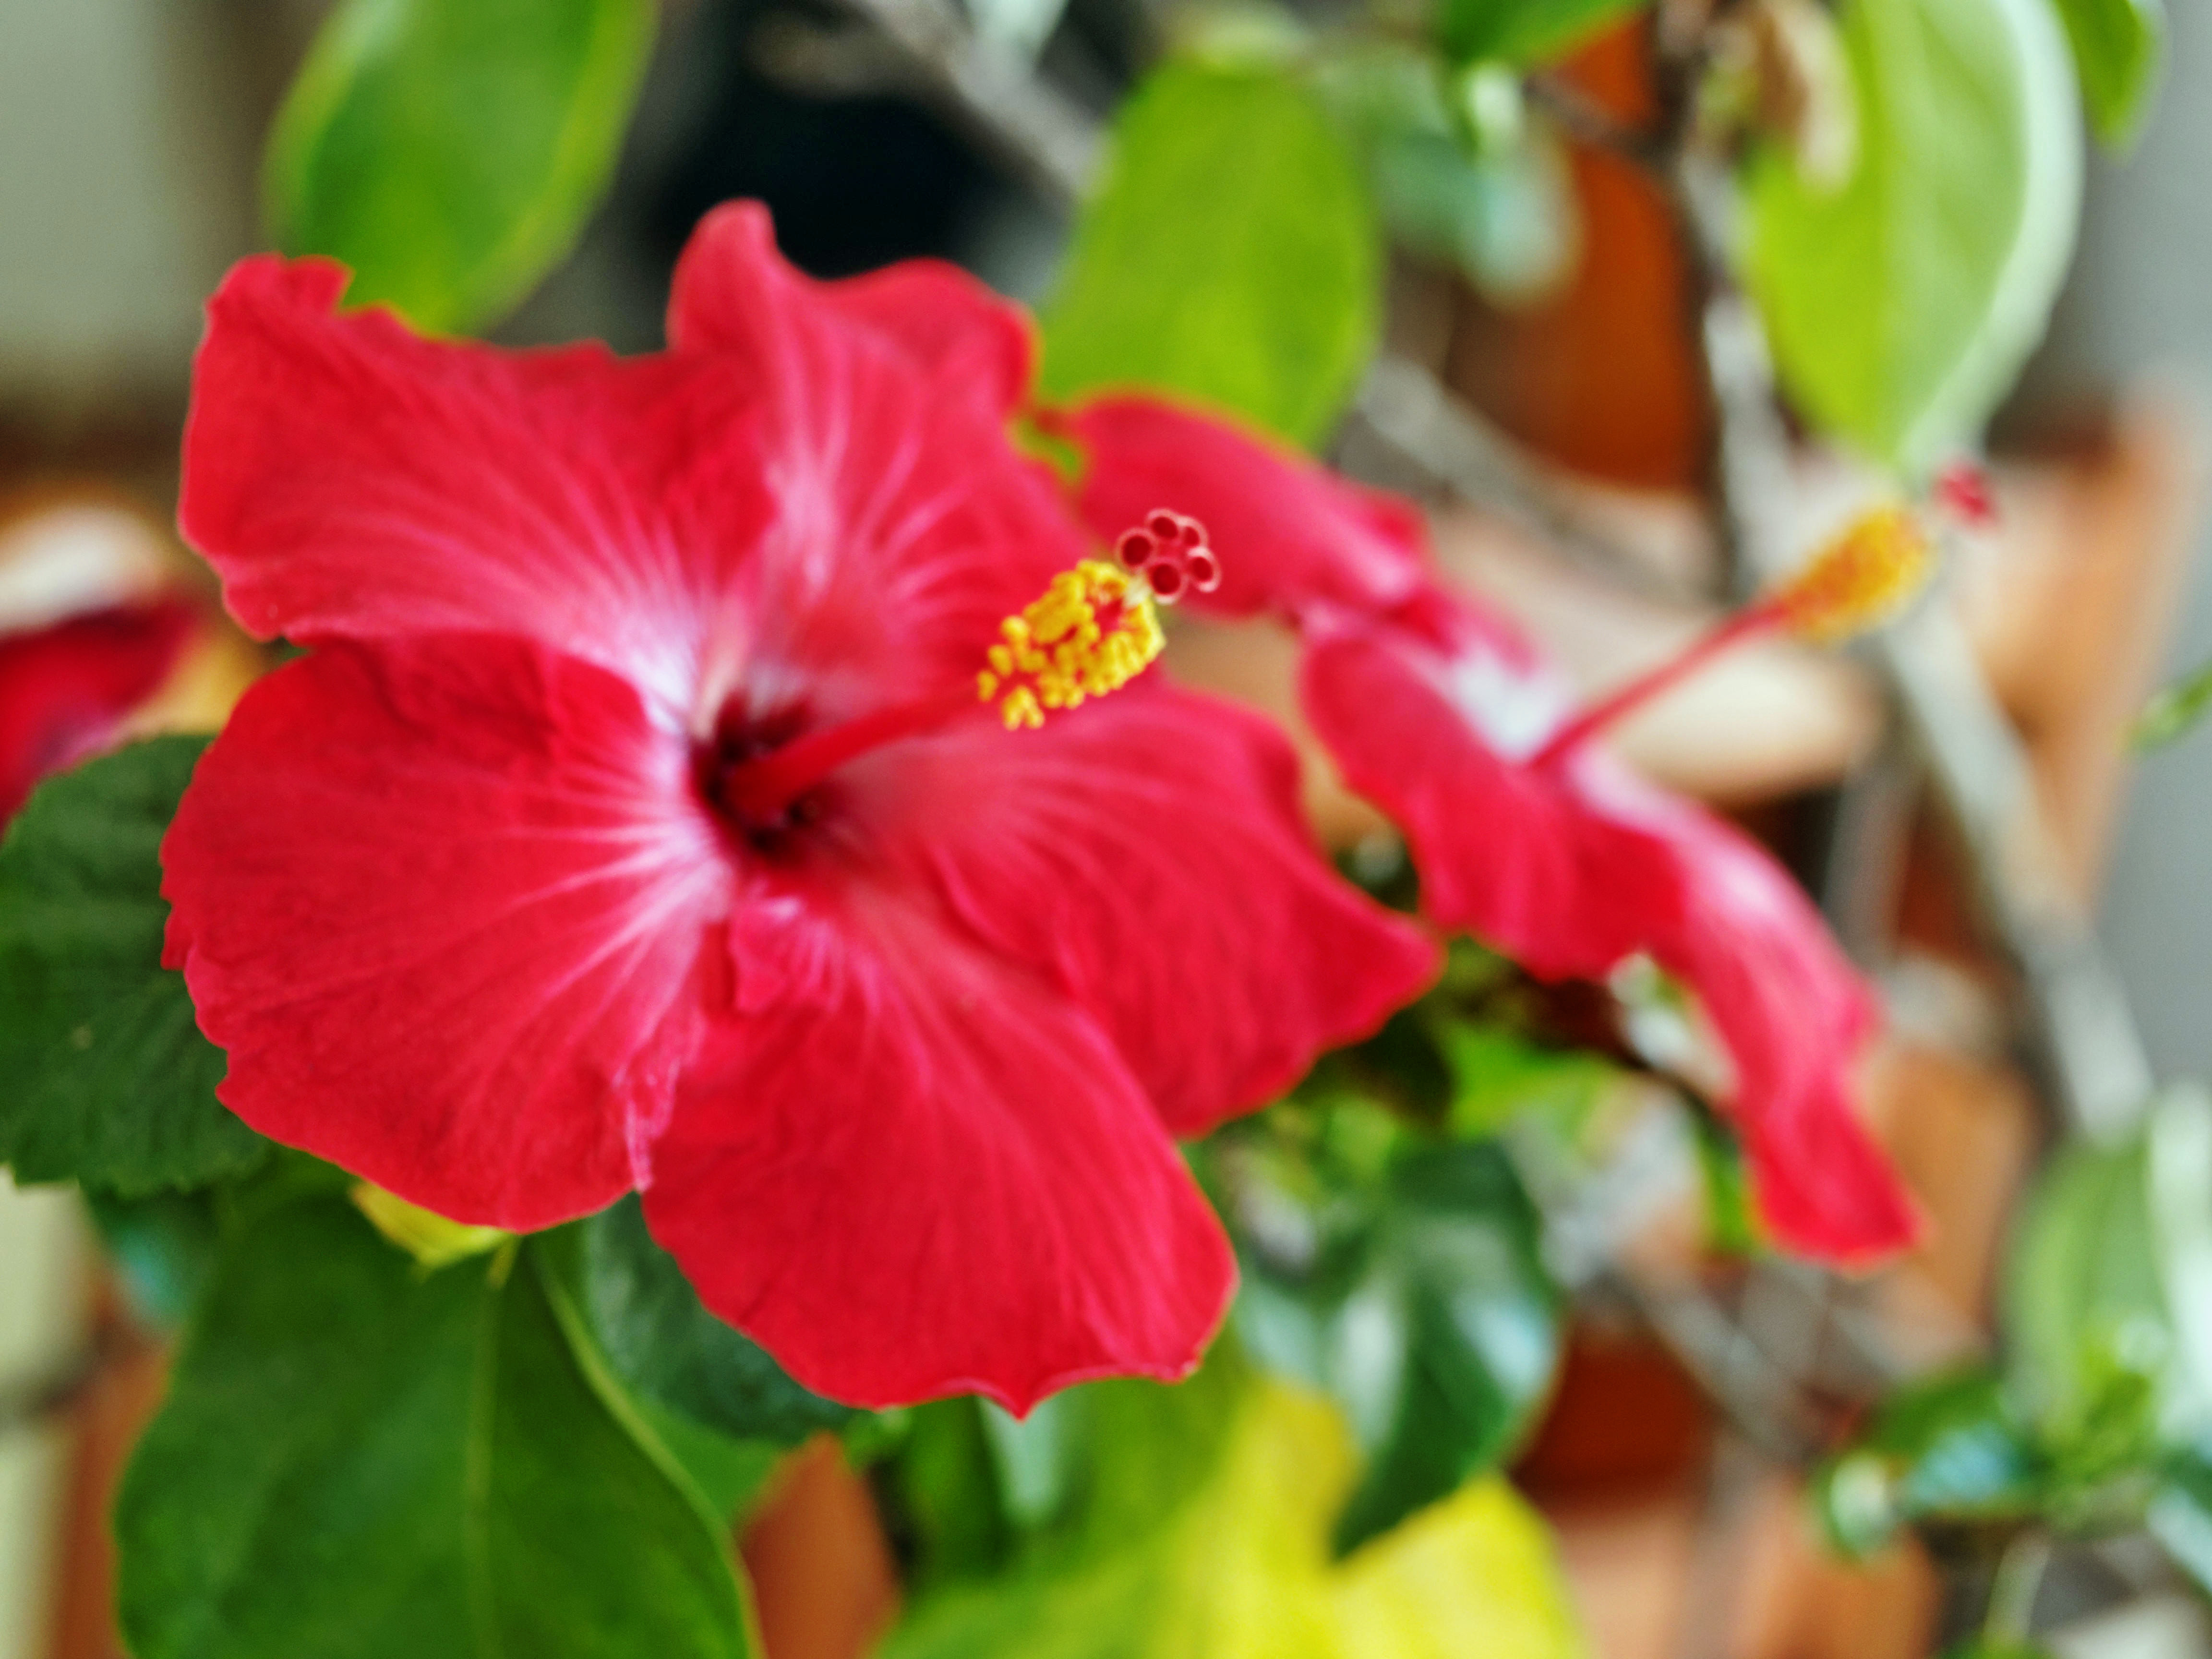 This should be Hibiscus-2-single.jpeg.  Is it missing?